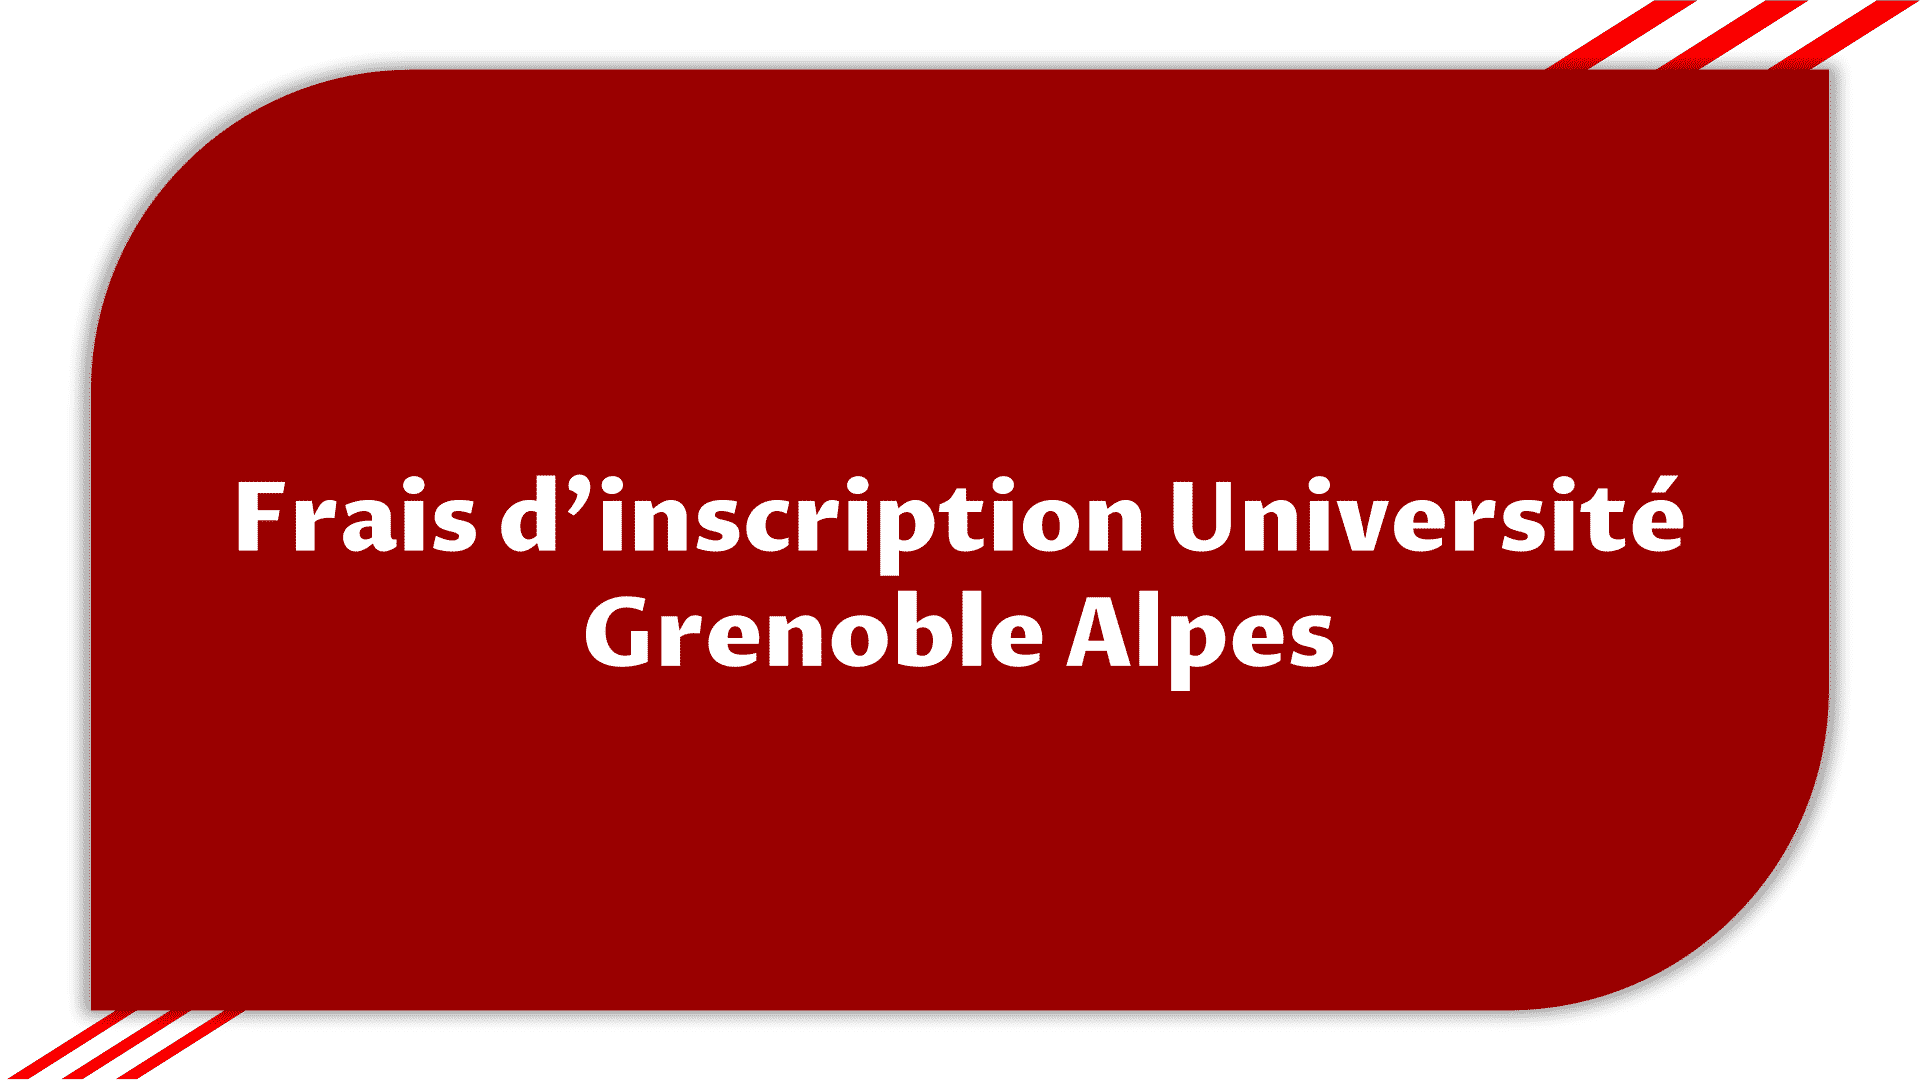 frais d u0026 39 inscription universit u00e9 grenoble alpes  u0026gt  etudier en